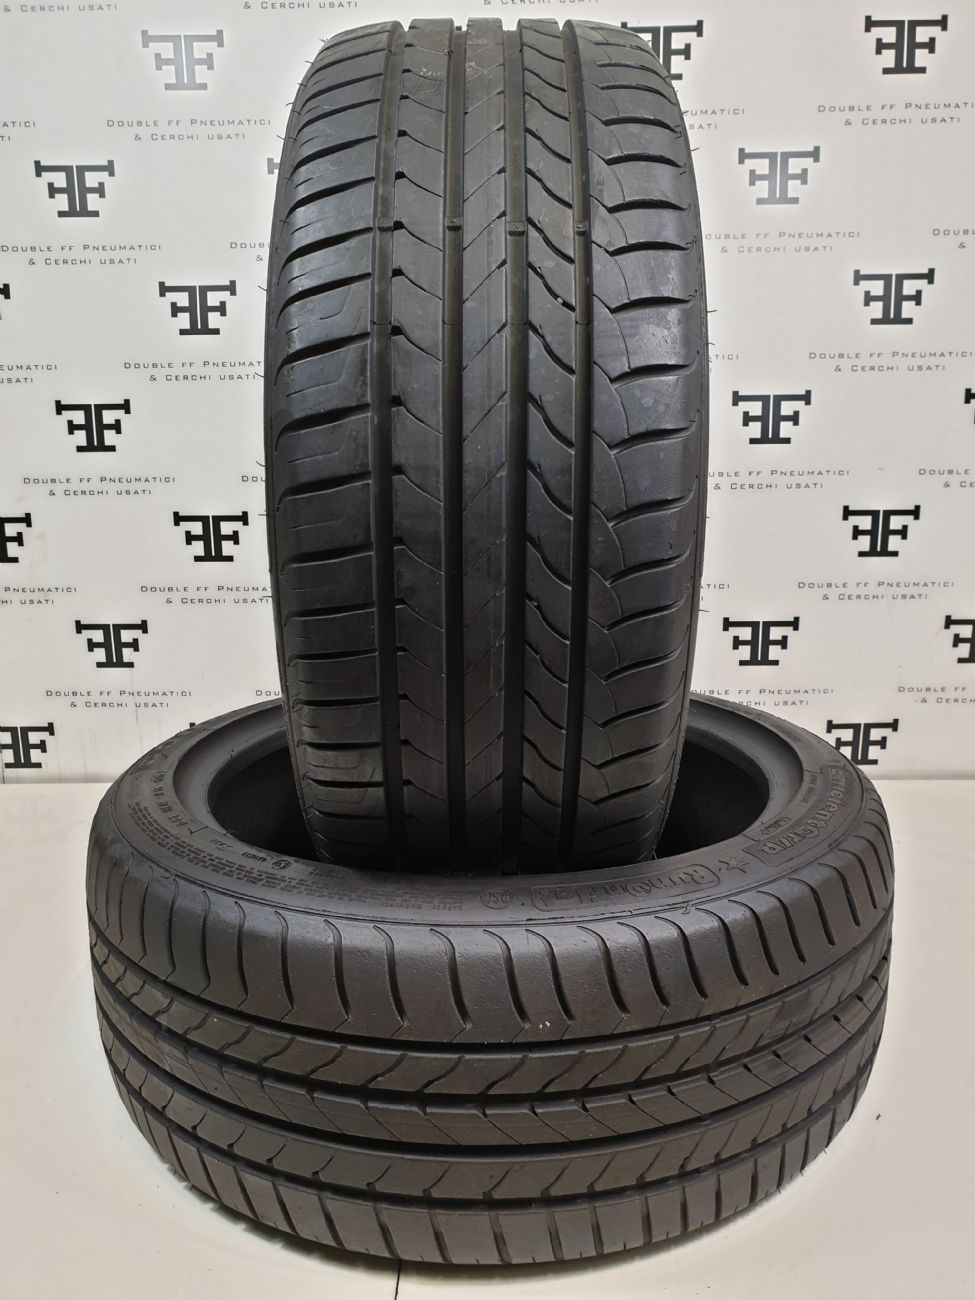 225/45 R18 91 V GOODYEAR EFFICIENTGRIP Runflat DEMONTE